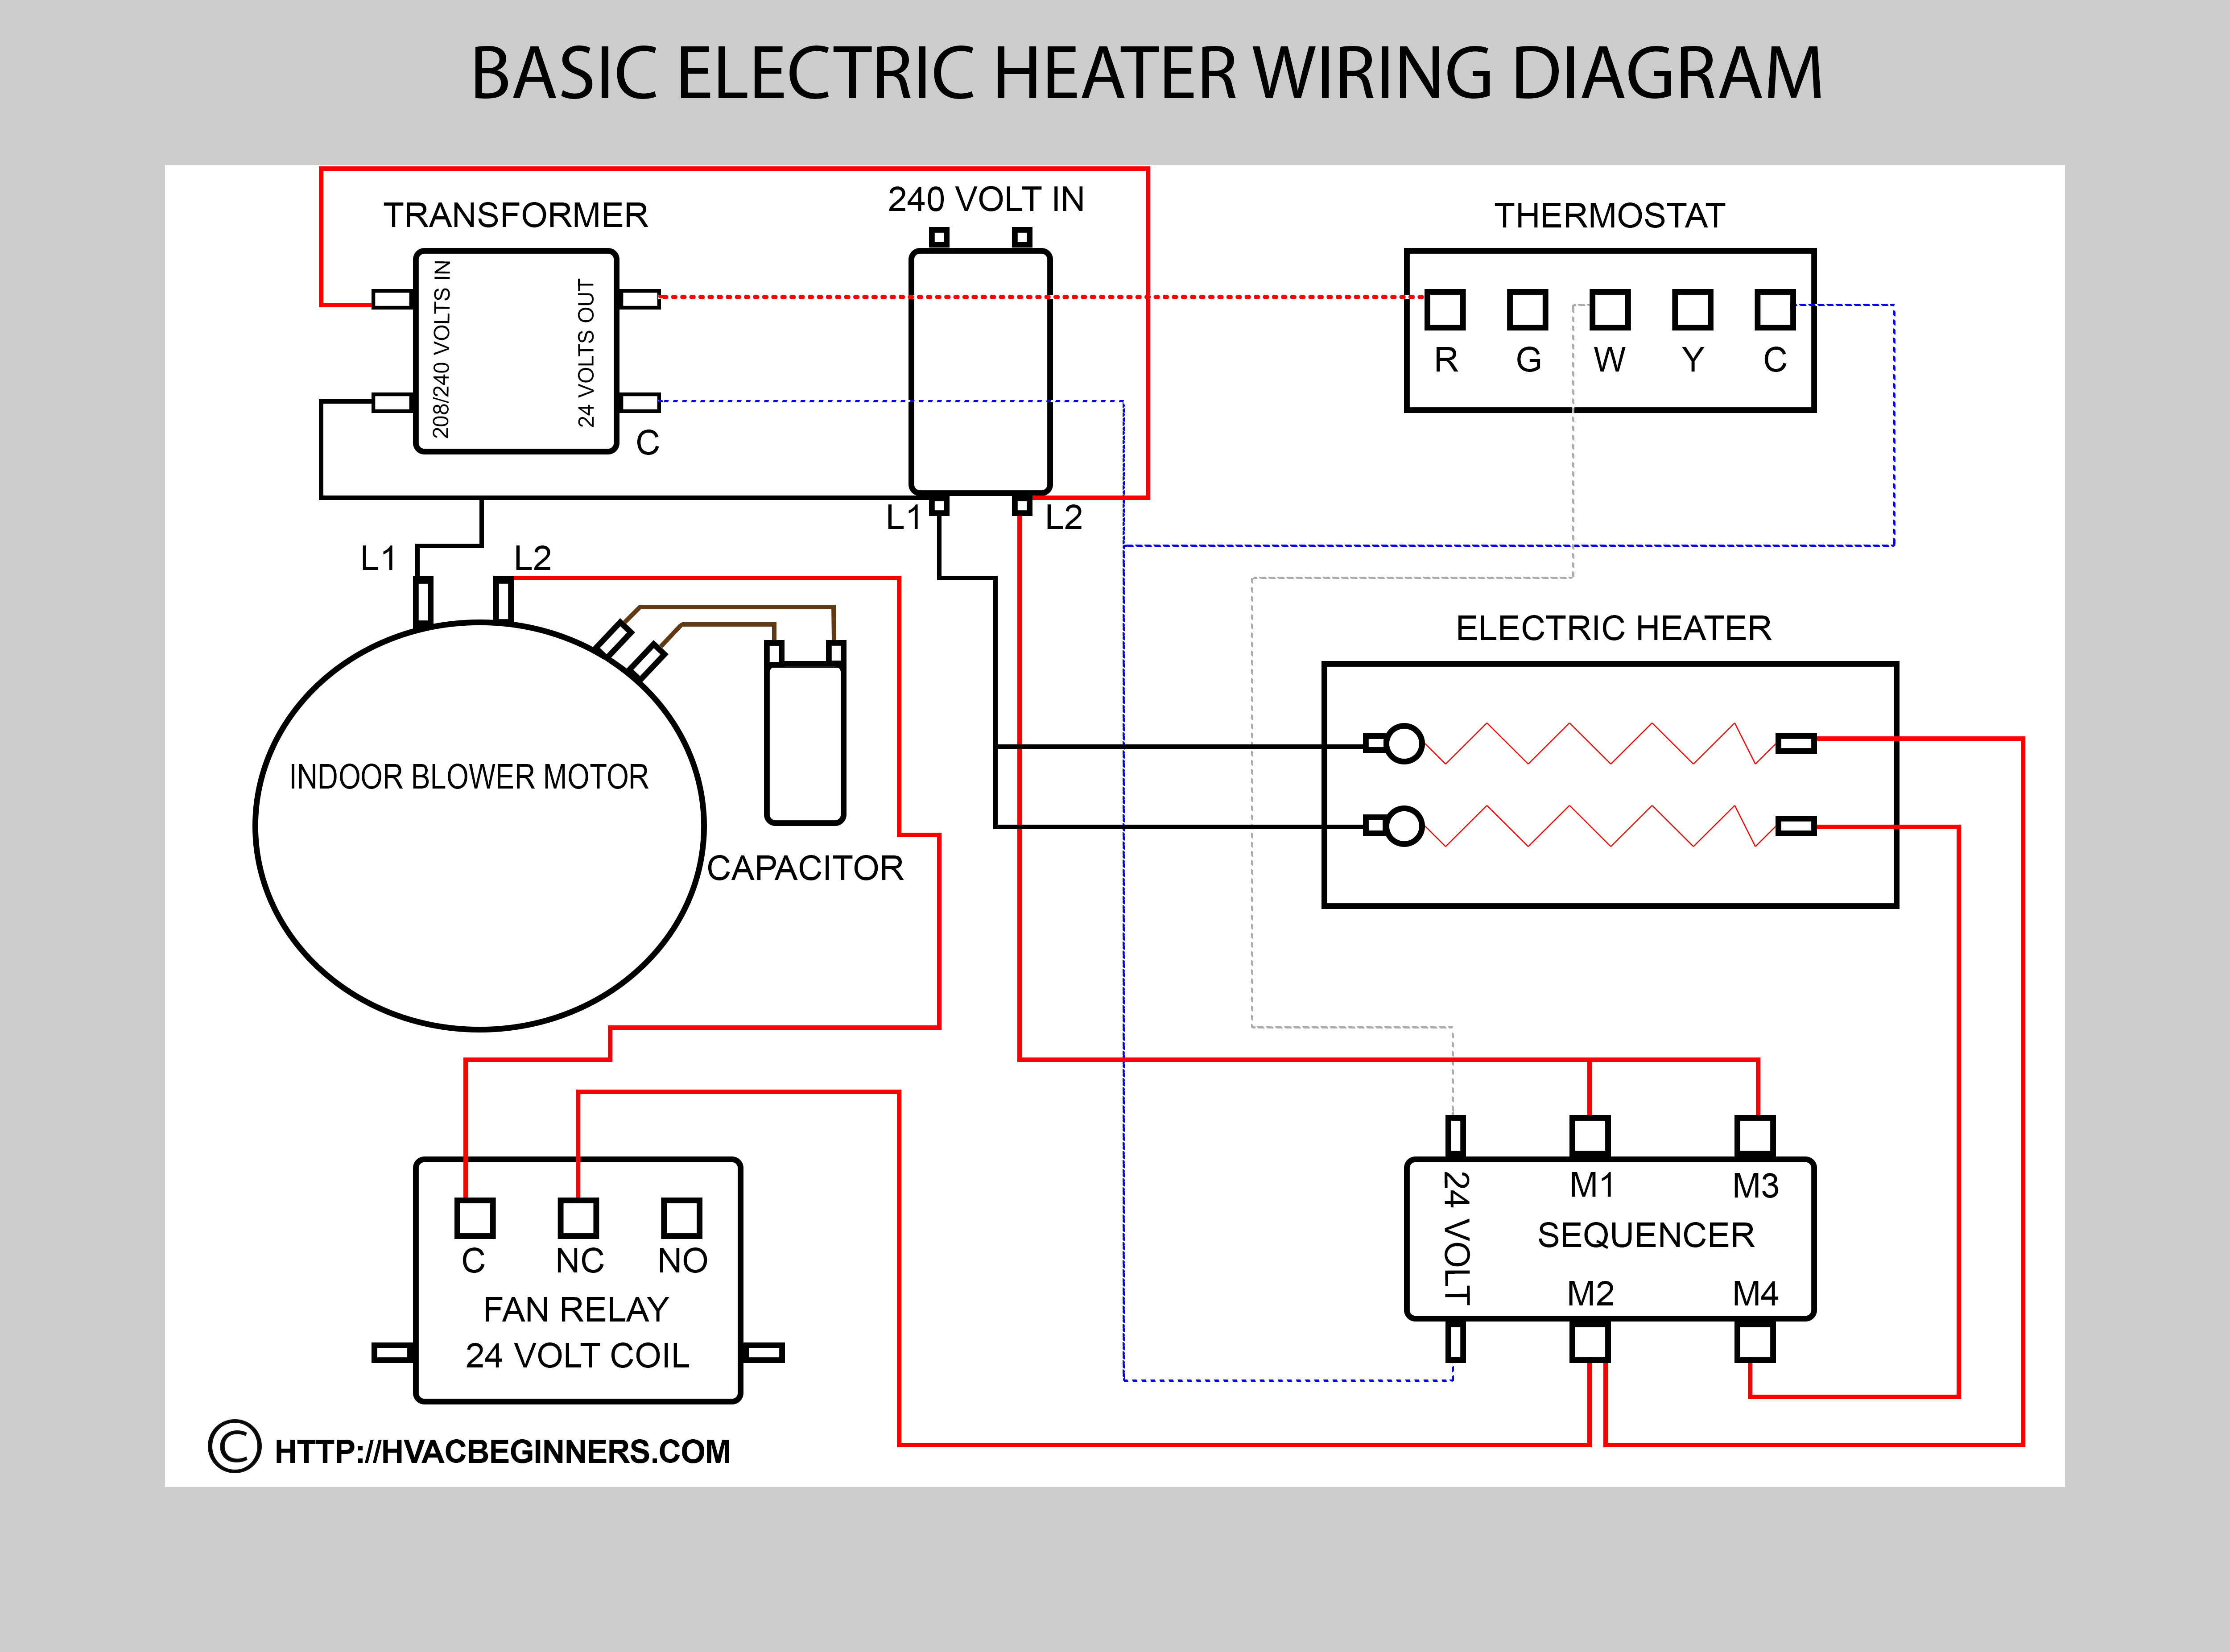 Ac Wire Diagrams | Wiring Diagram - Central Ac Wiring Diagram